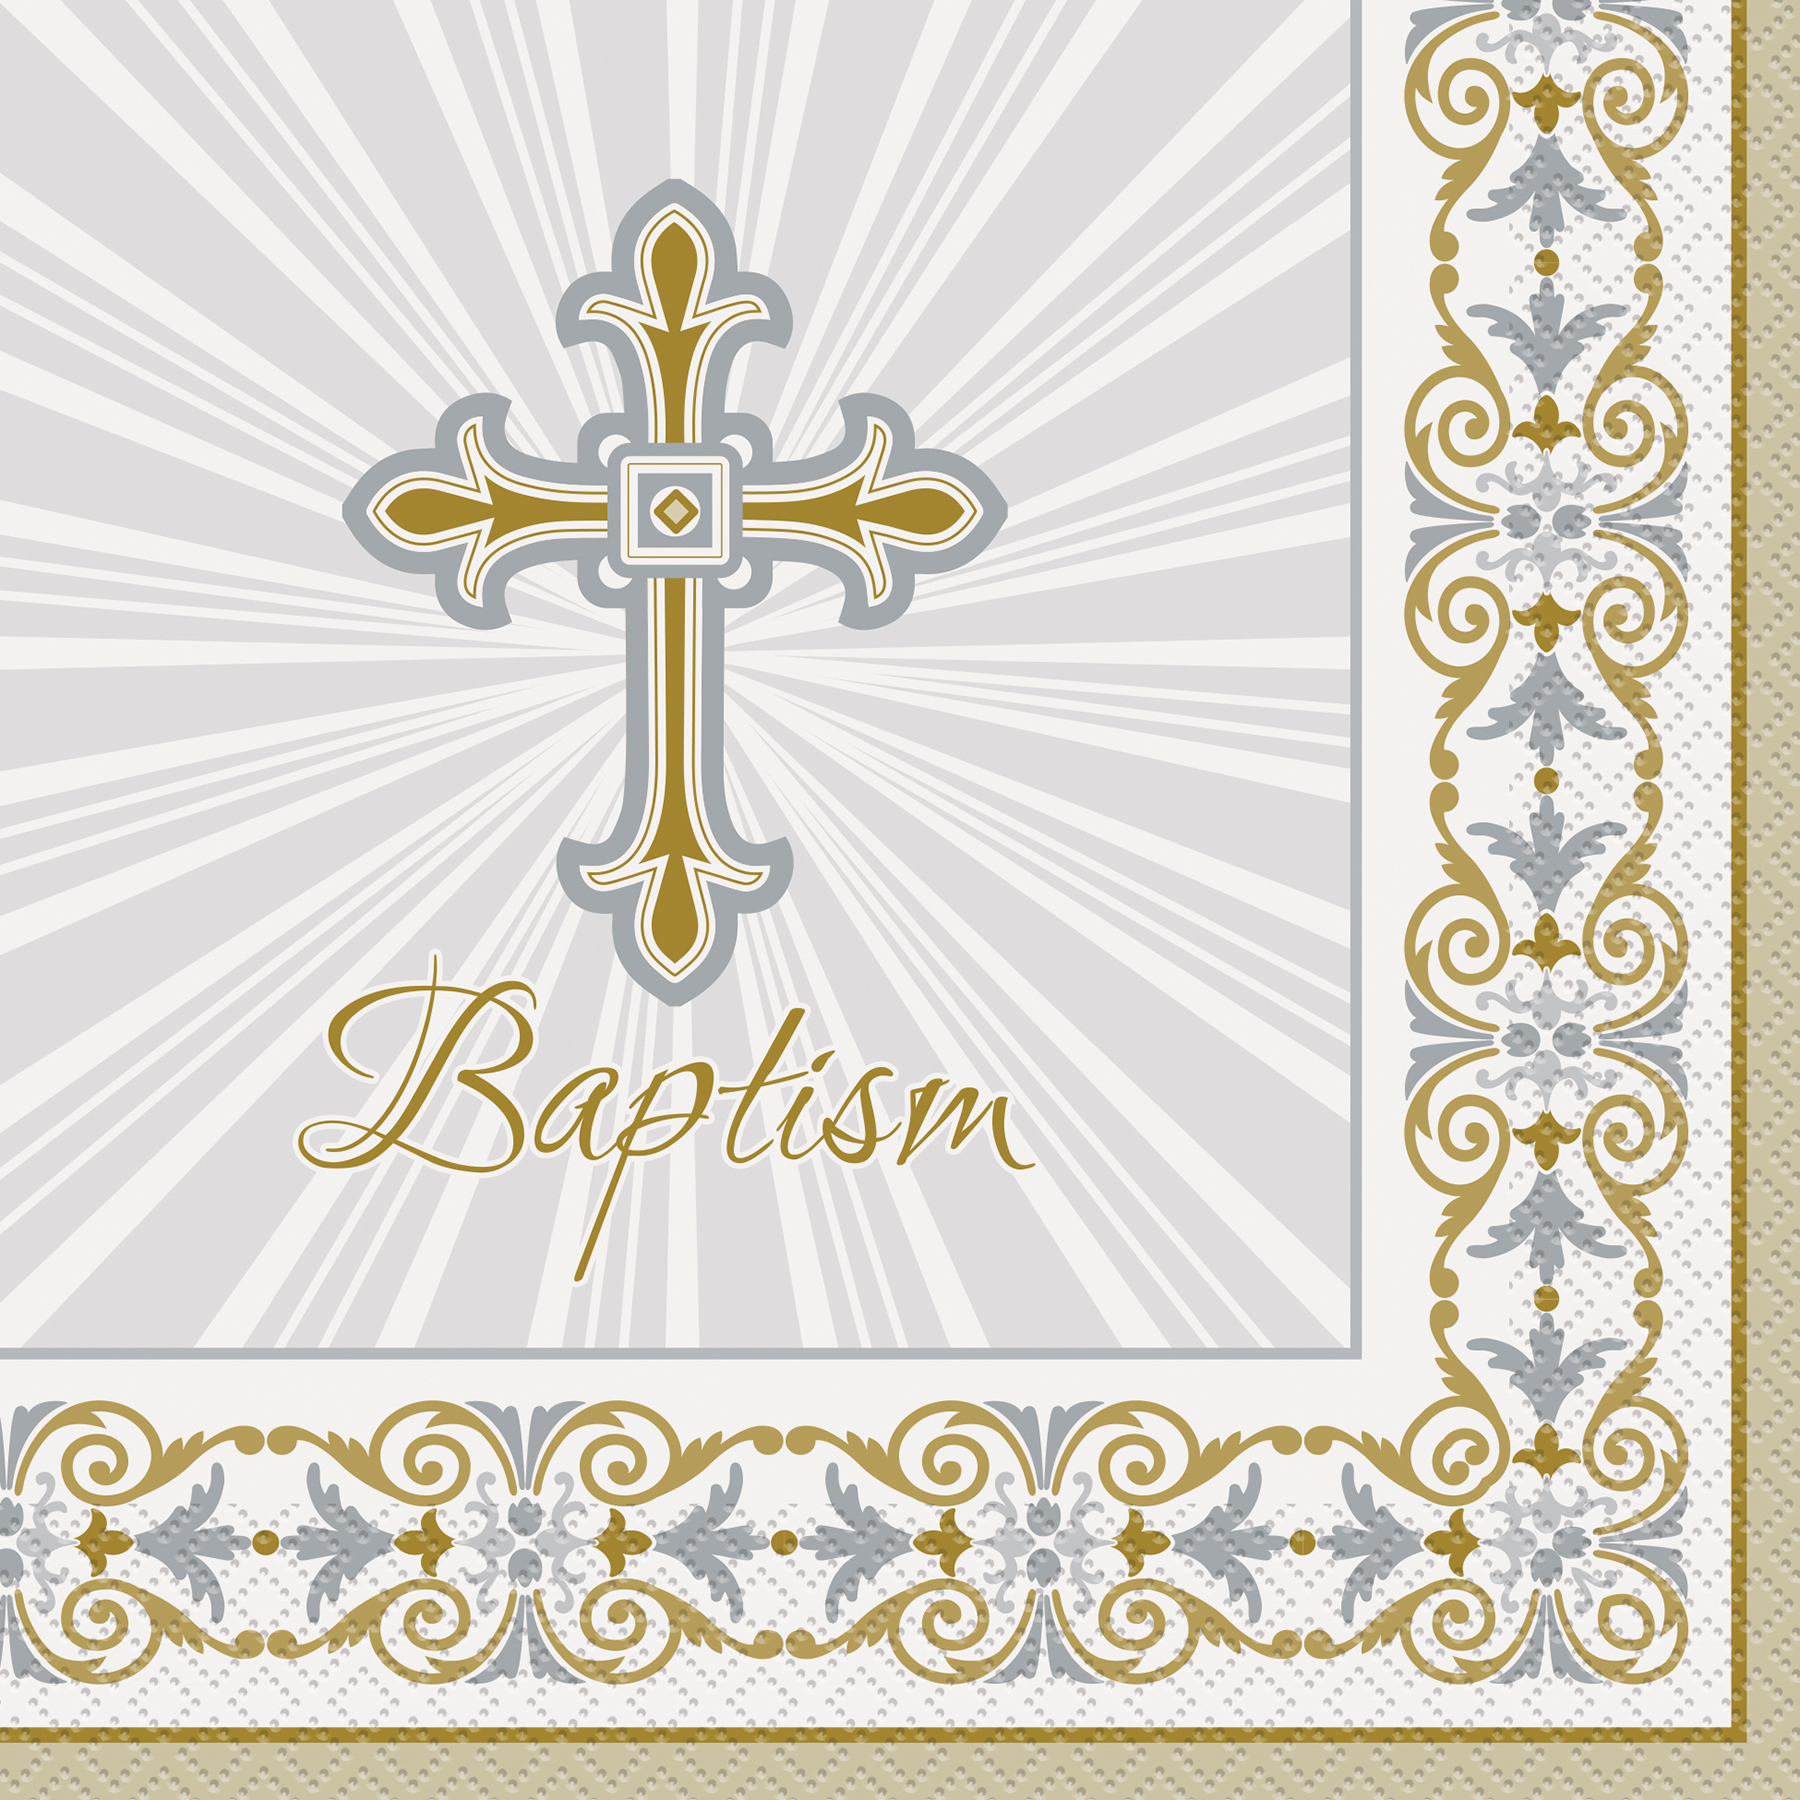 Radiant Gold and Silver Cross Baptism Luncheon Napkins 16ct  sc 1 st  Michaels Stores & Radiant Gold and Silver Cross Baptism Napkins | Baptism Napkins and ...